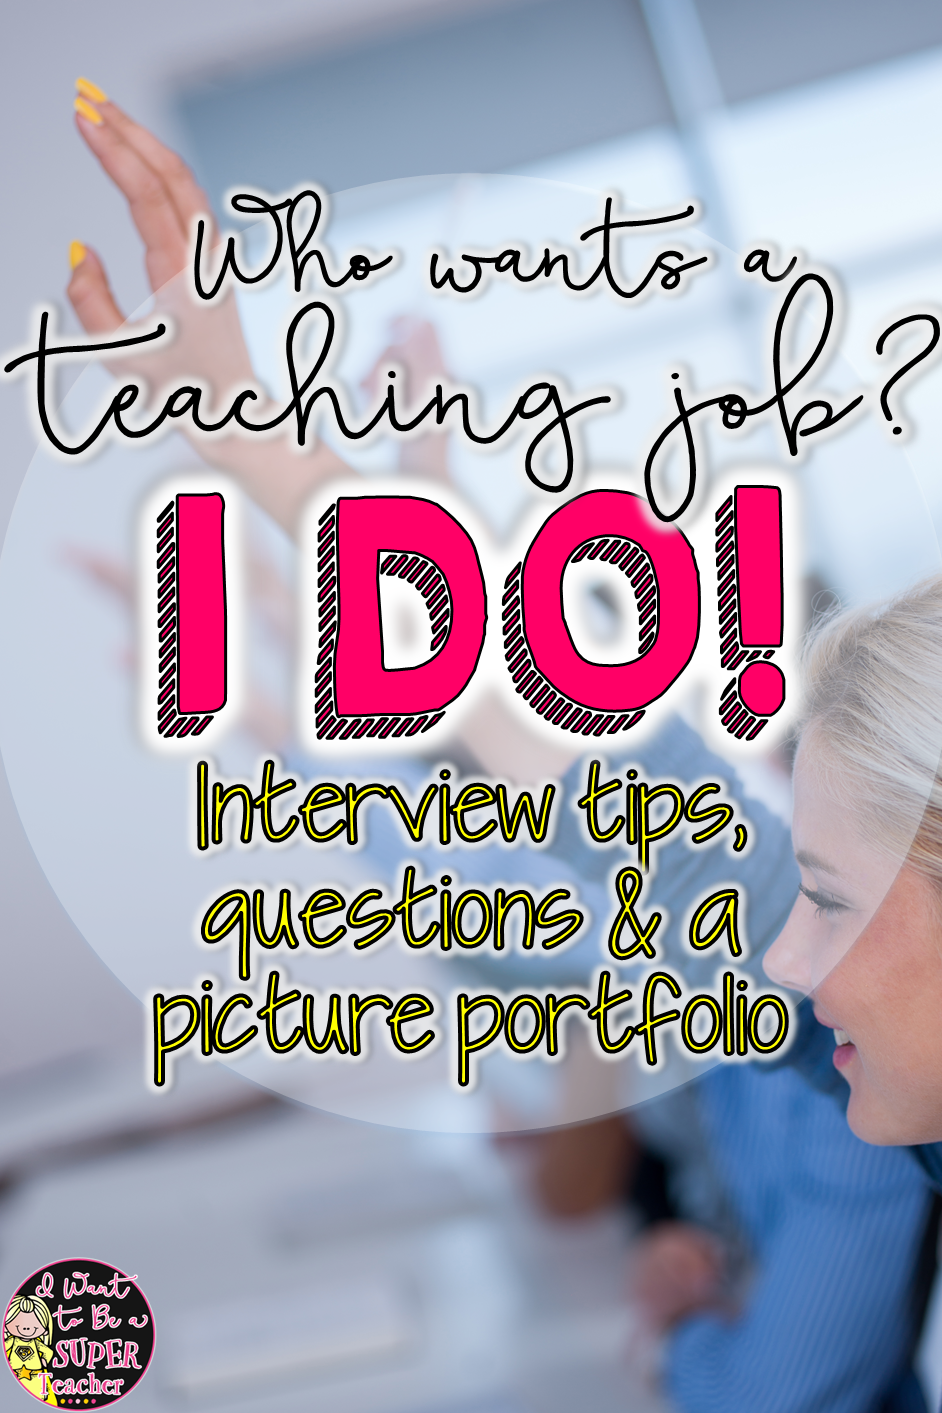 Learning Rock Your Teacher Interview Tips Questions